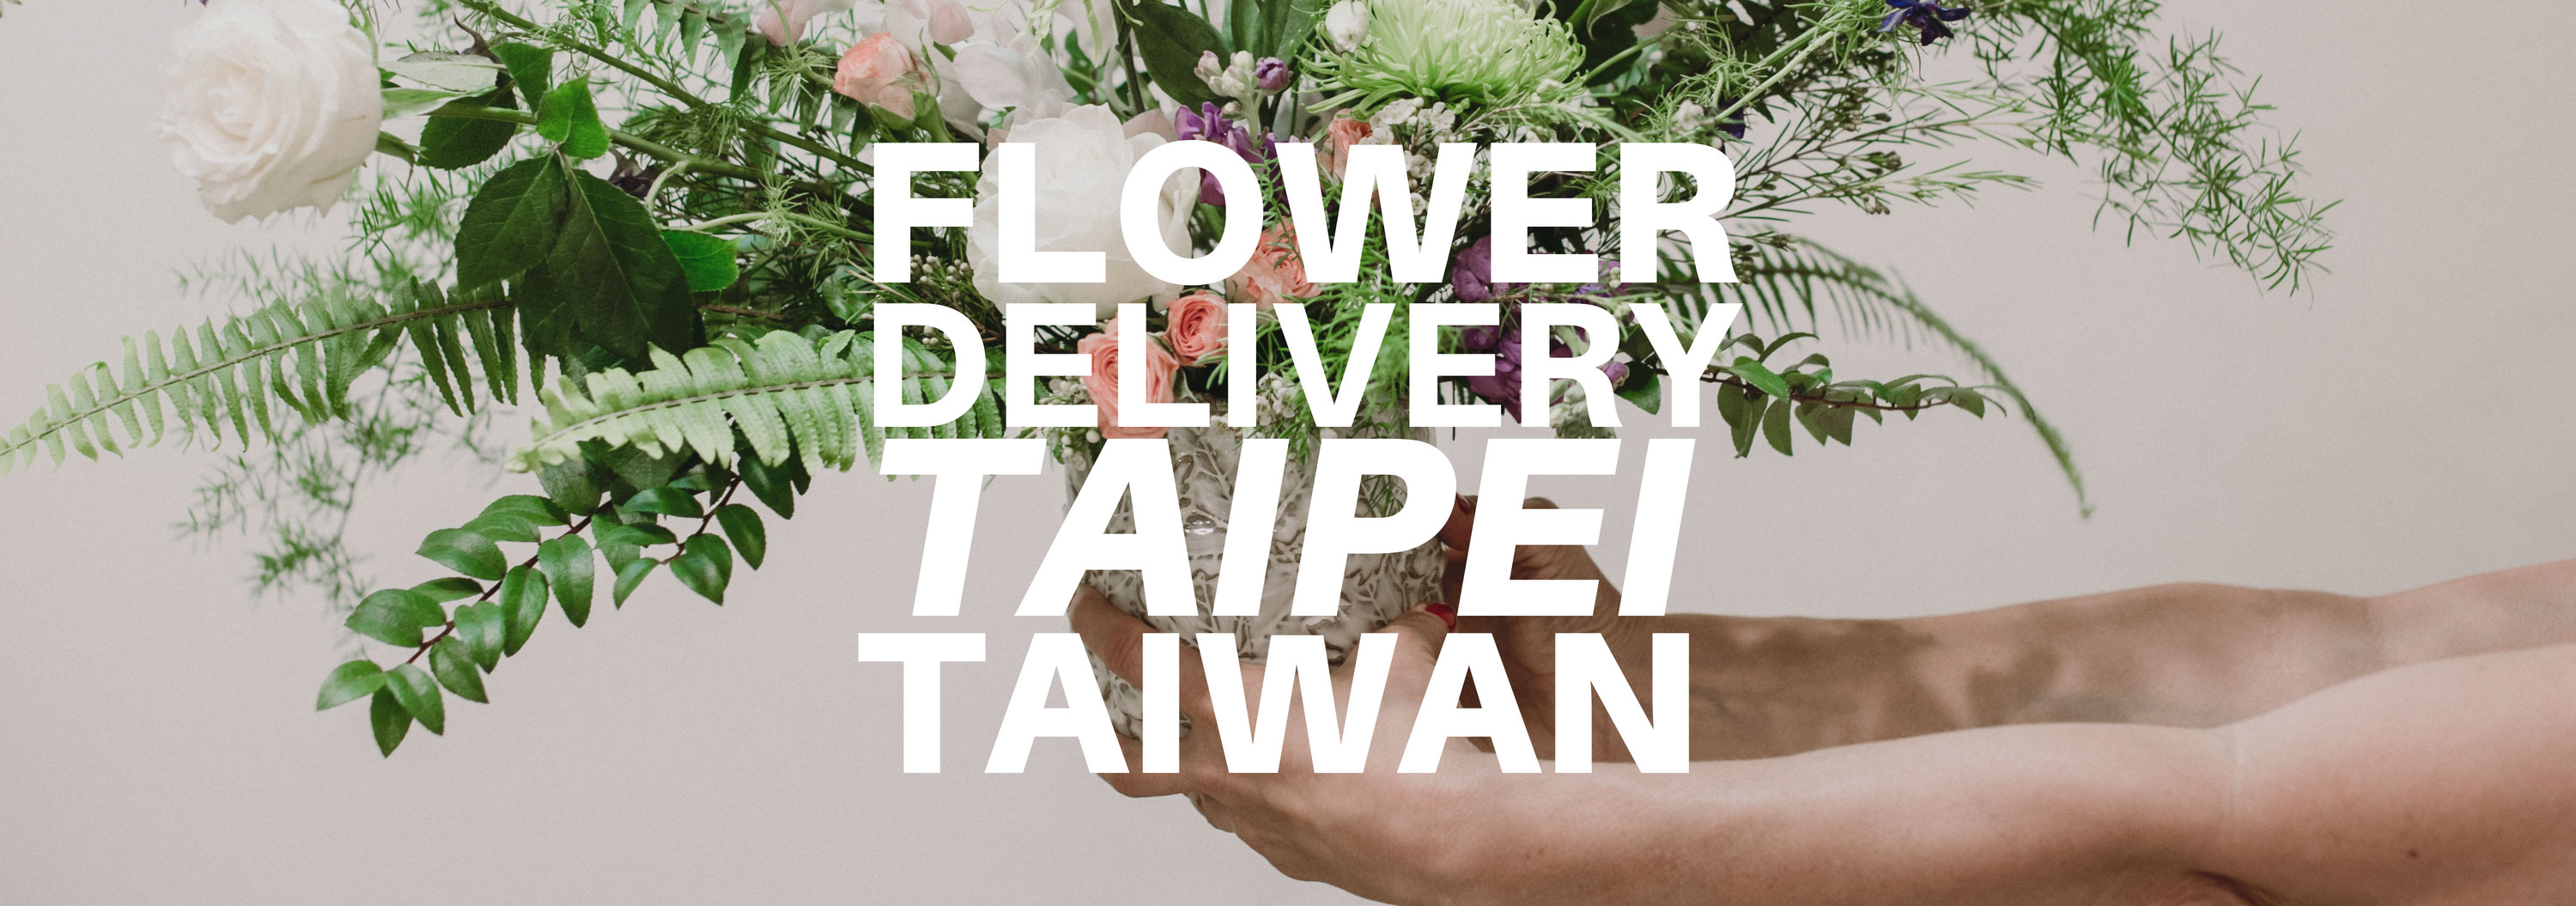 12 Best Options For Flower Delivery In Taipei And Taiwan